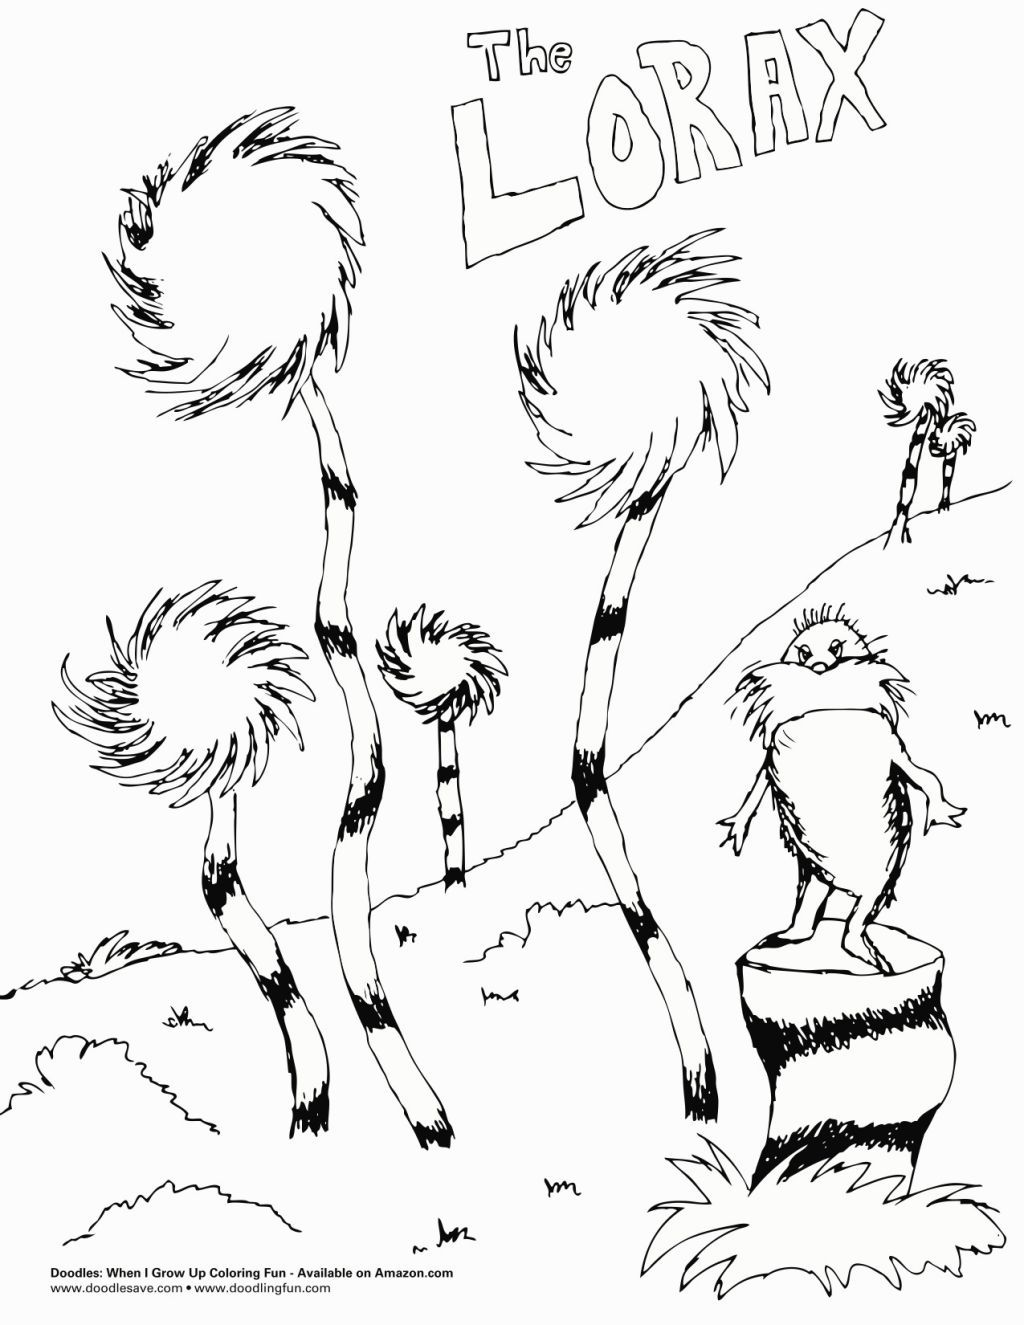 The Lorax Coloring Pages | Coloring Pages | Pinterest | Lorax ...